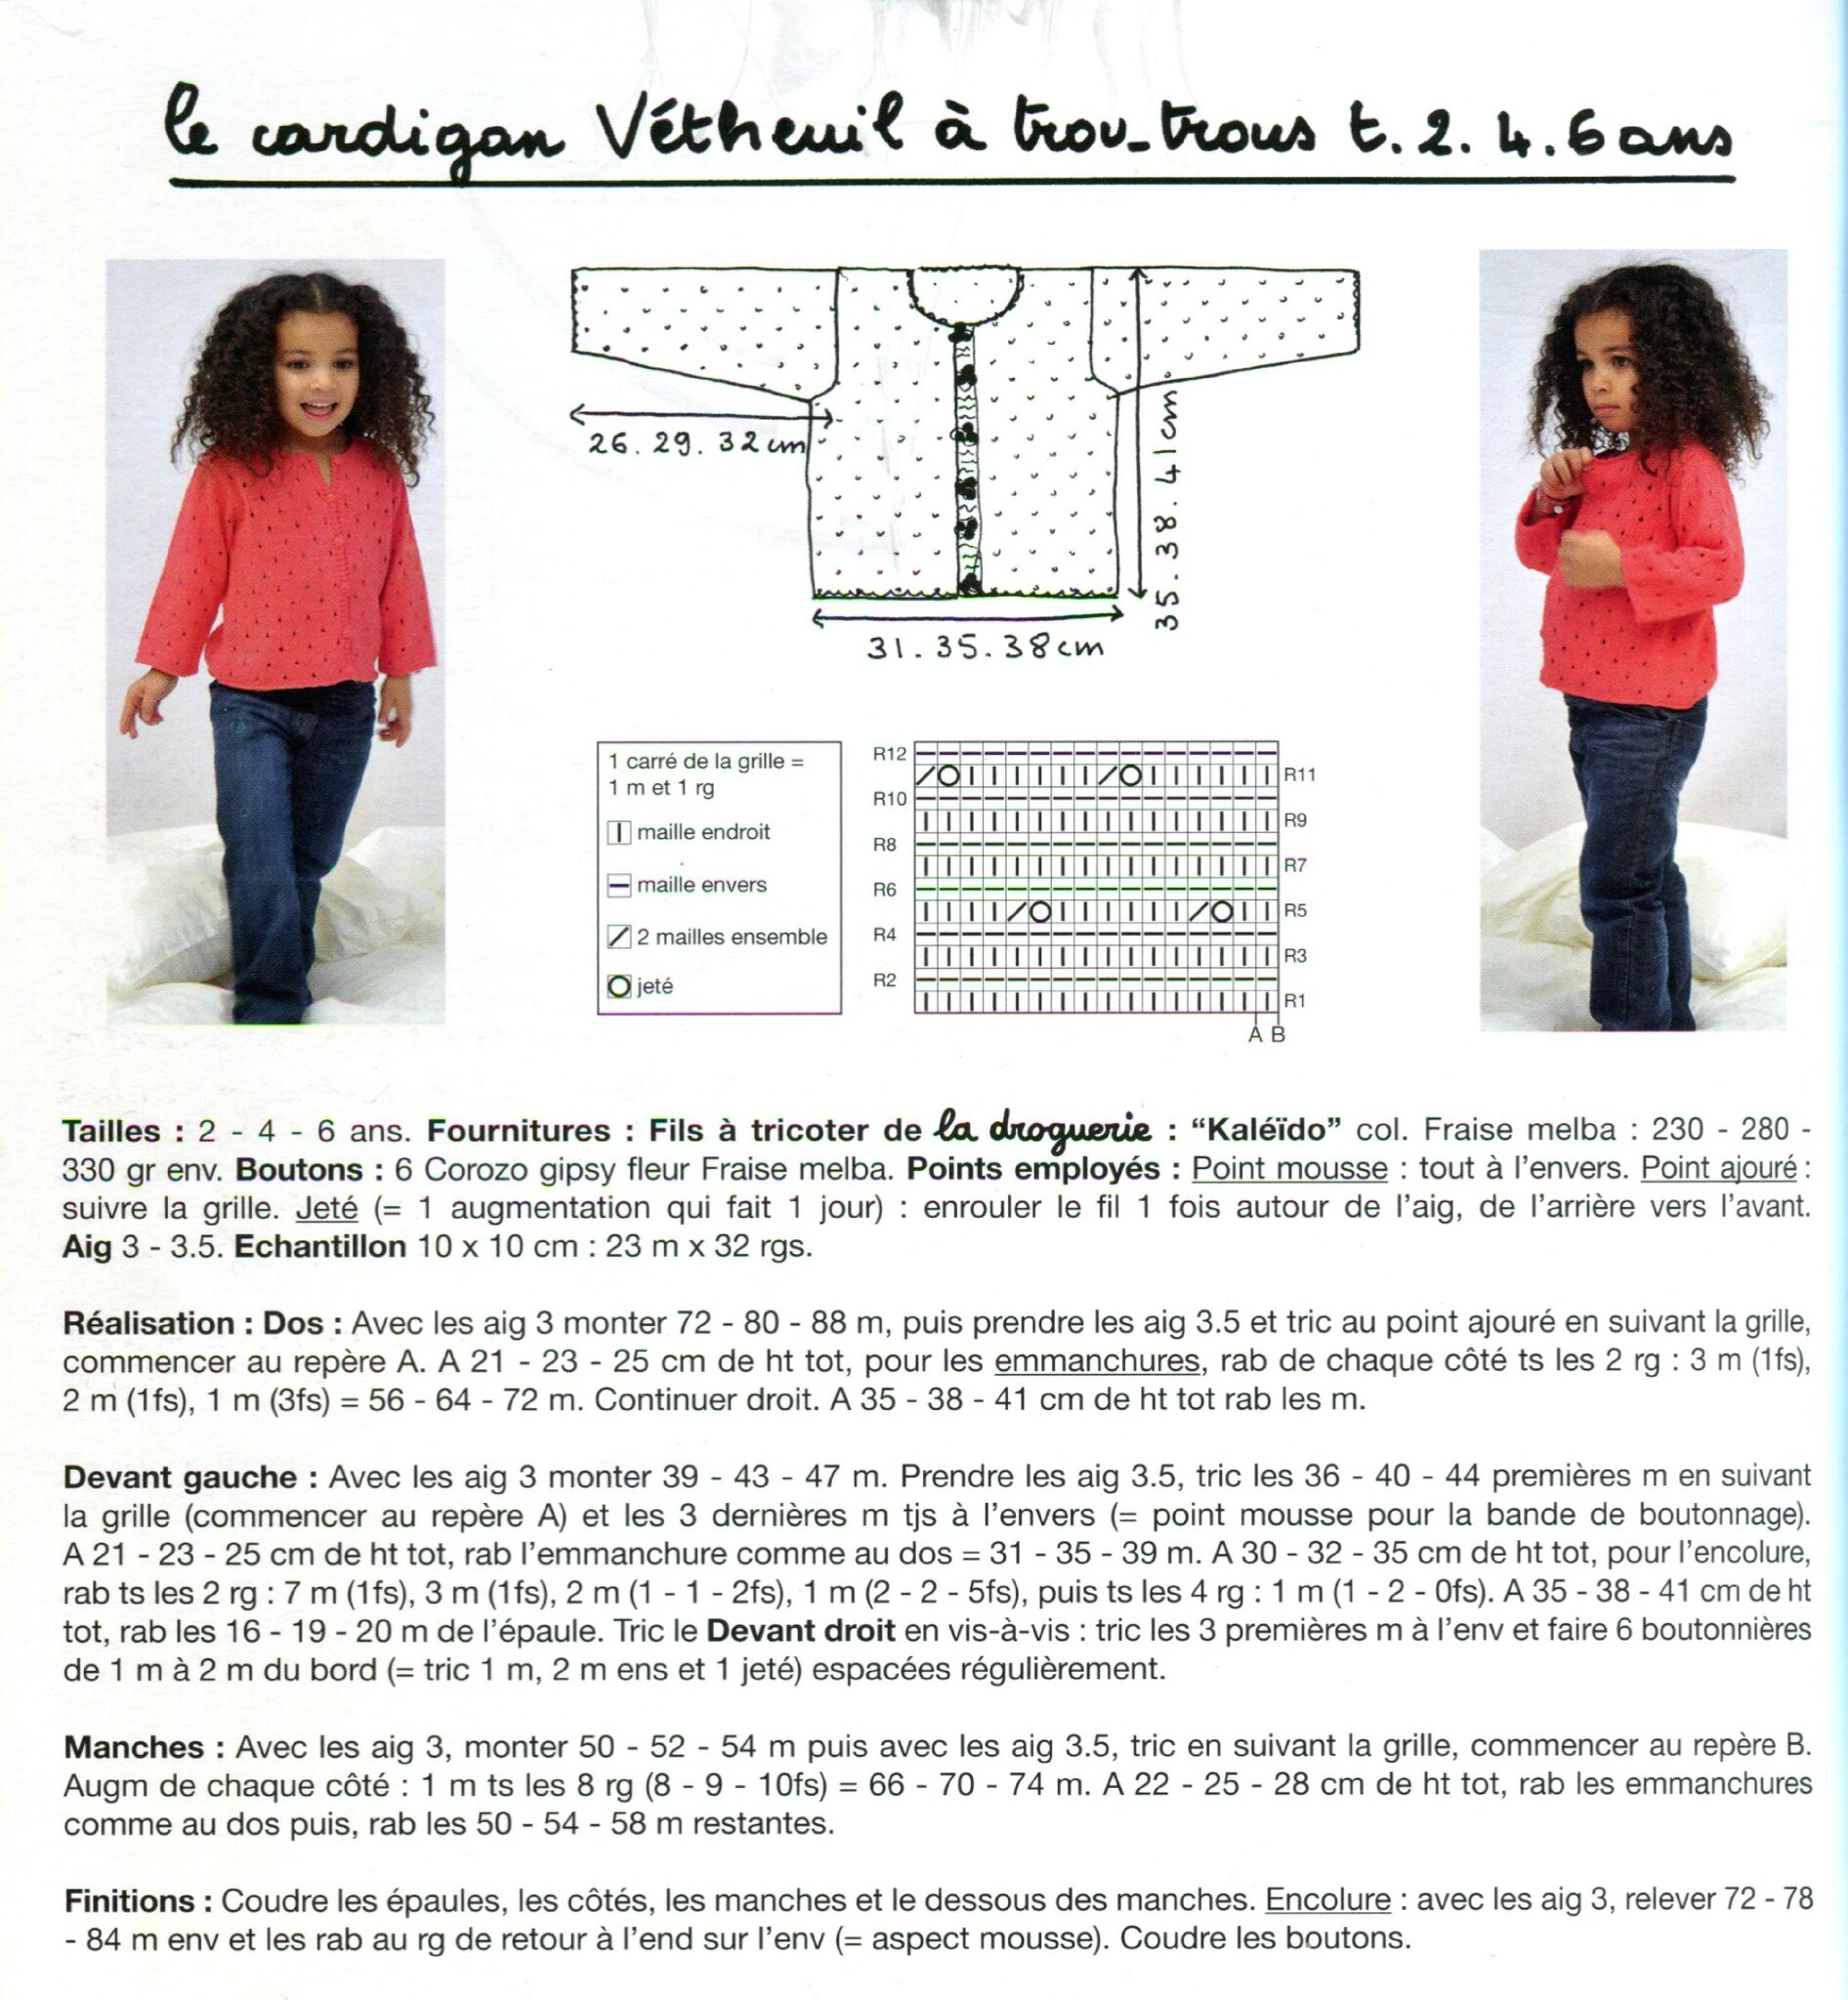 EXPLICATIONS 2-4-6 ANS